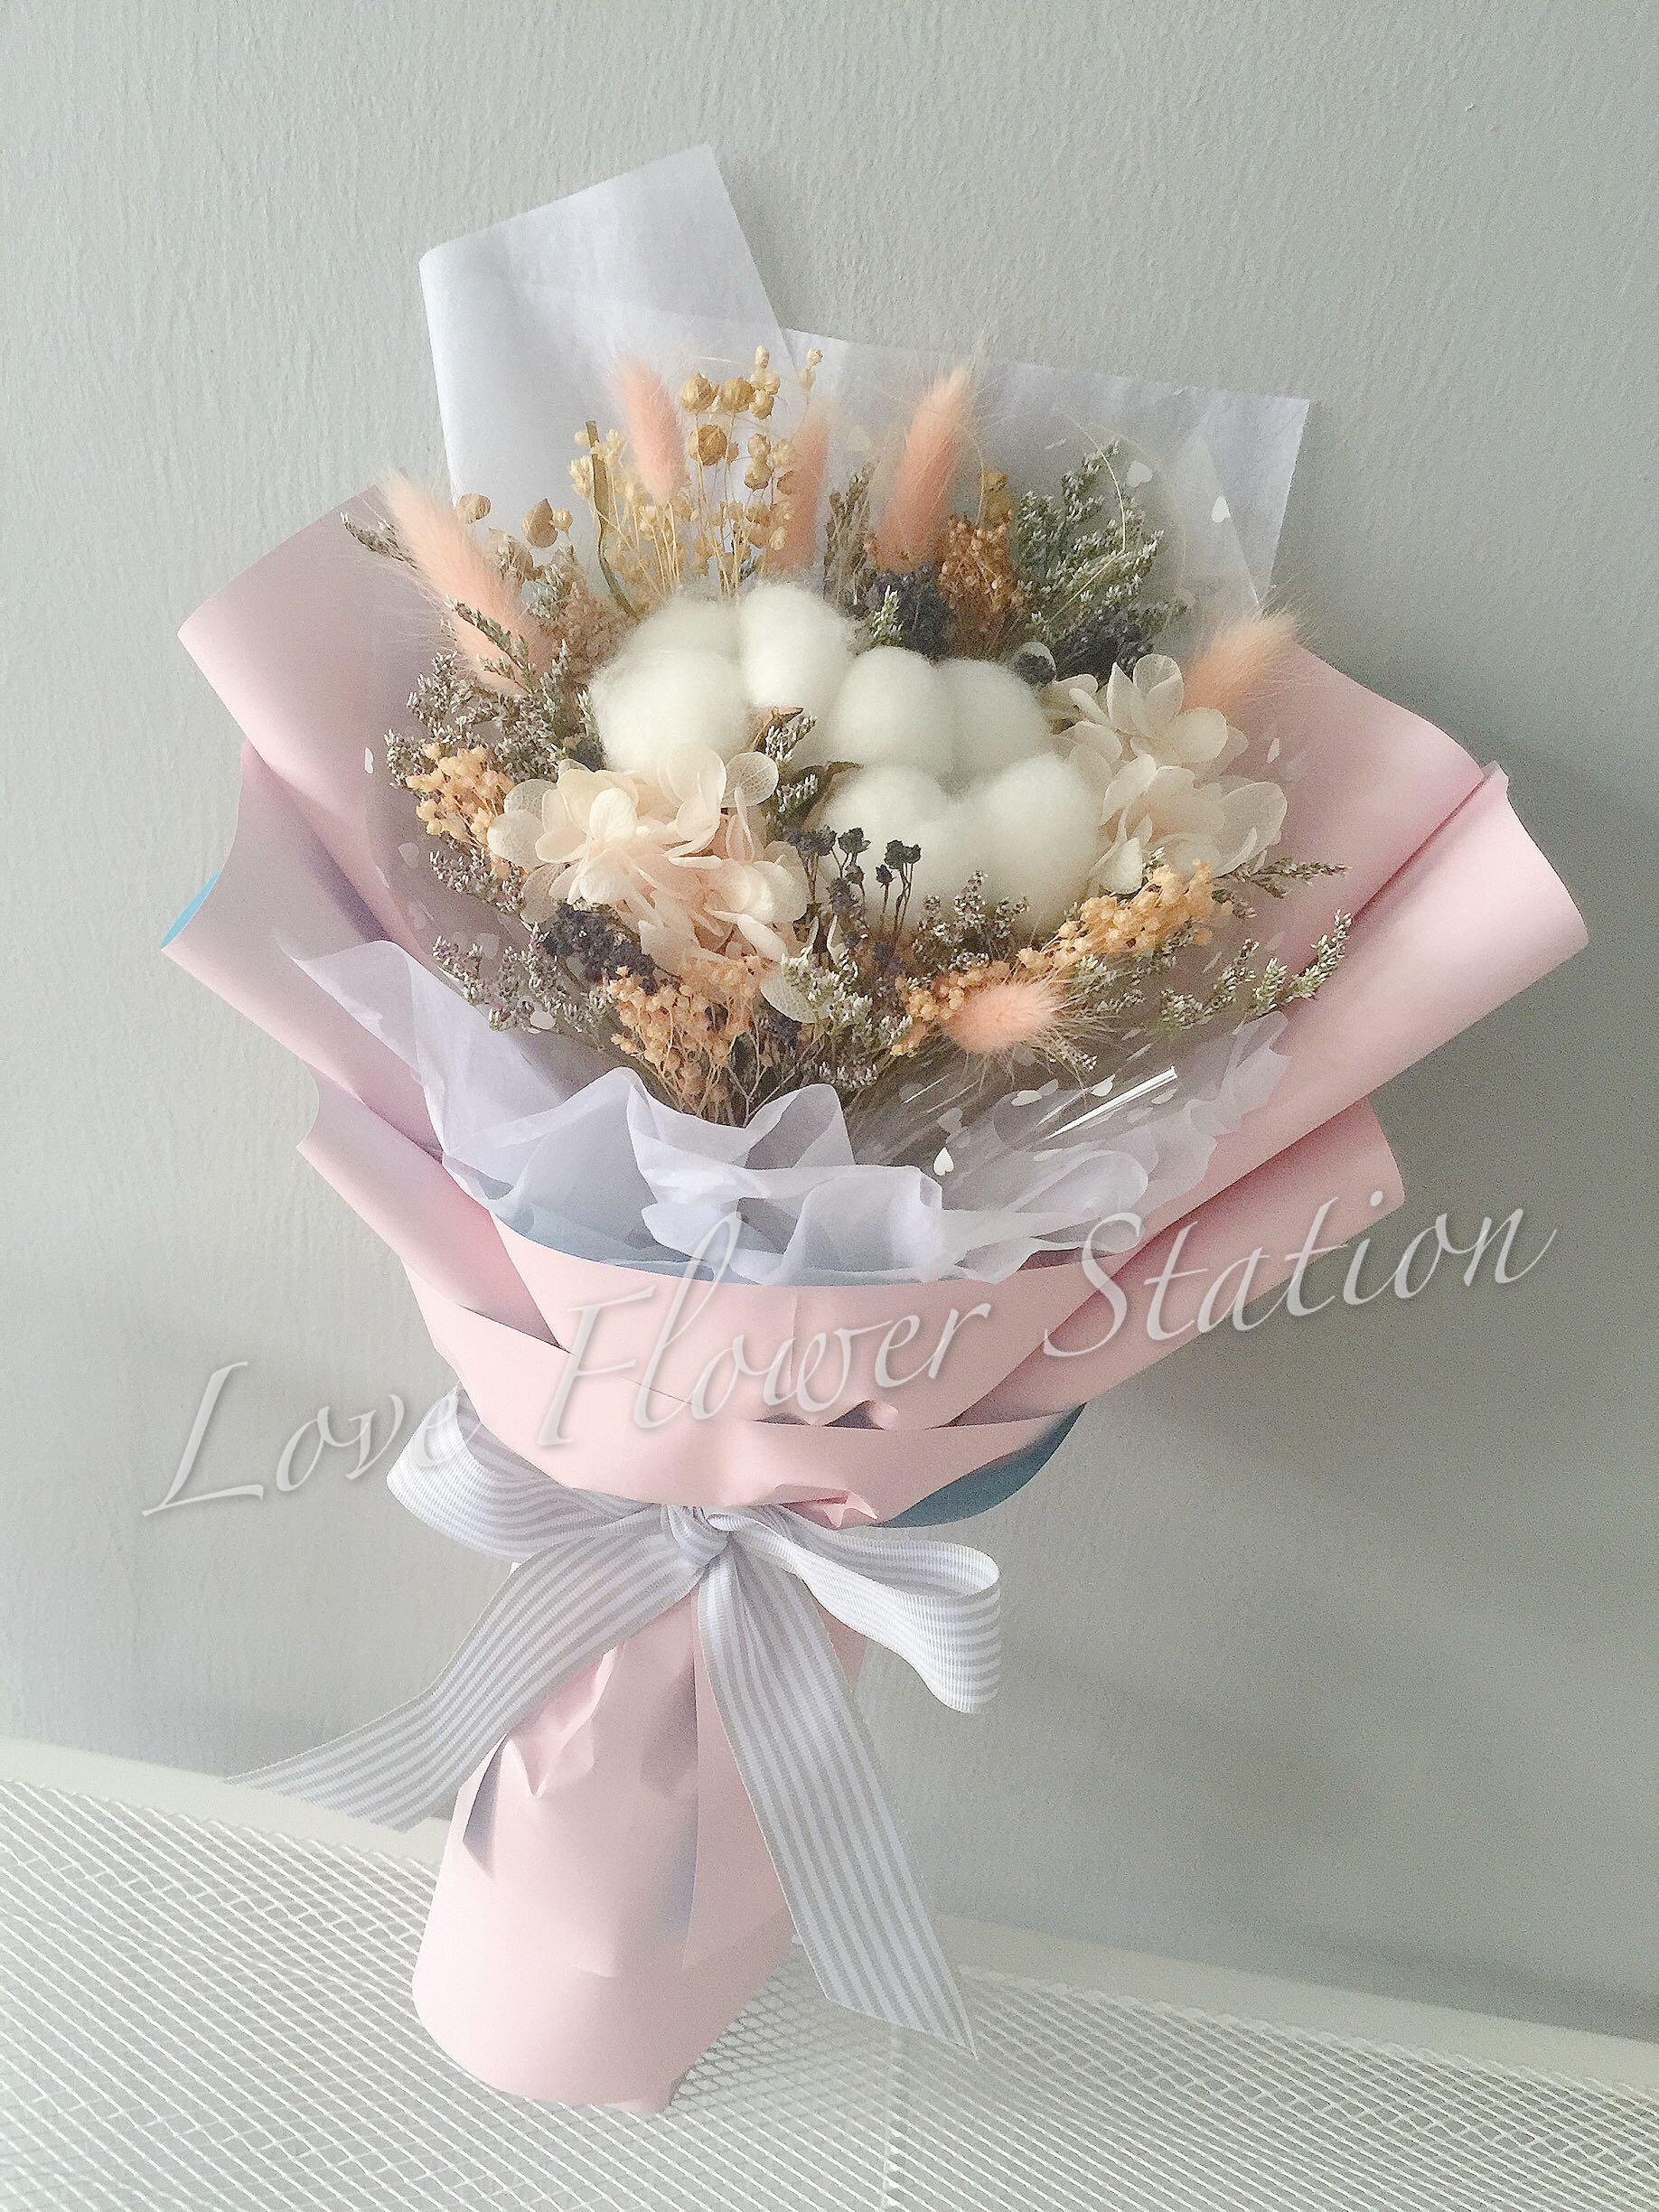 Cotton Preserved Hydrangea Peach Dried Flower Bouquet Mother S Day Flower Bouquet Graduation Flower Bouquet Birthday Flower Bouquet Gardening Flowers Bouquets On Carousell